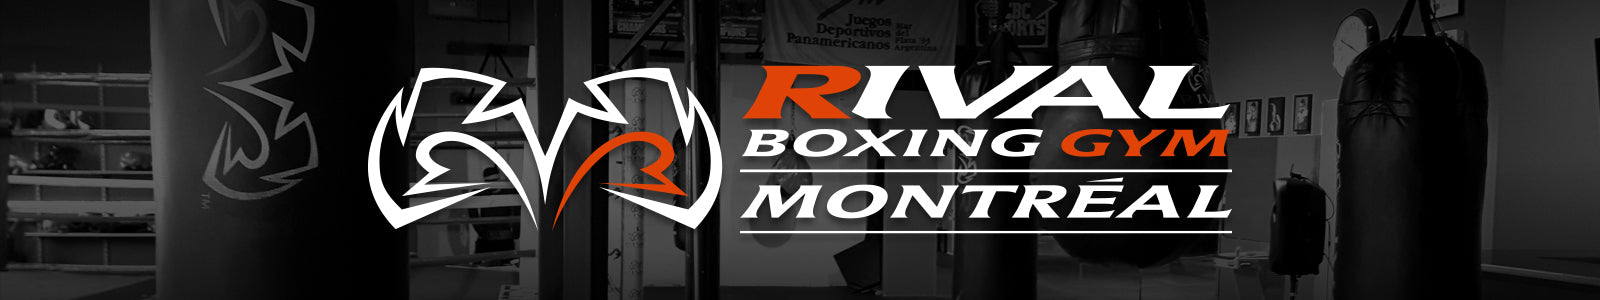 rival-boxing-gym-montreal